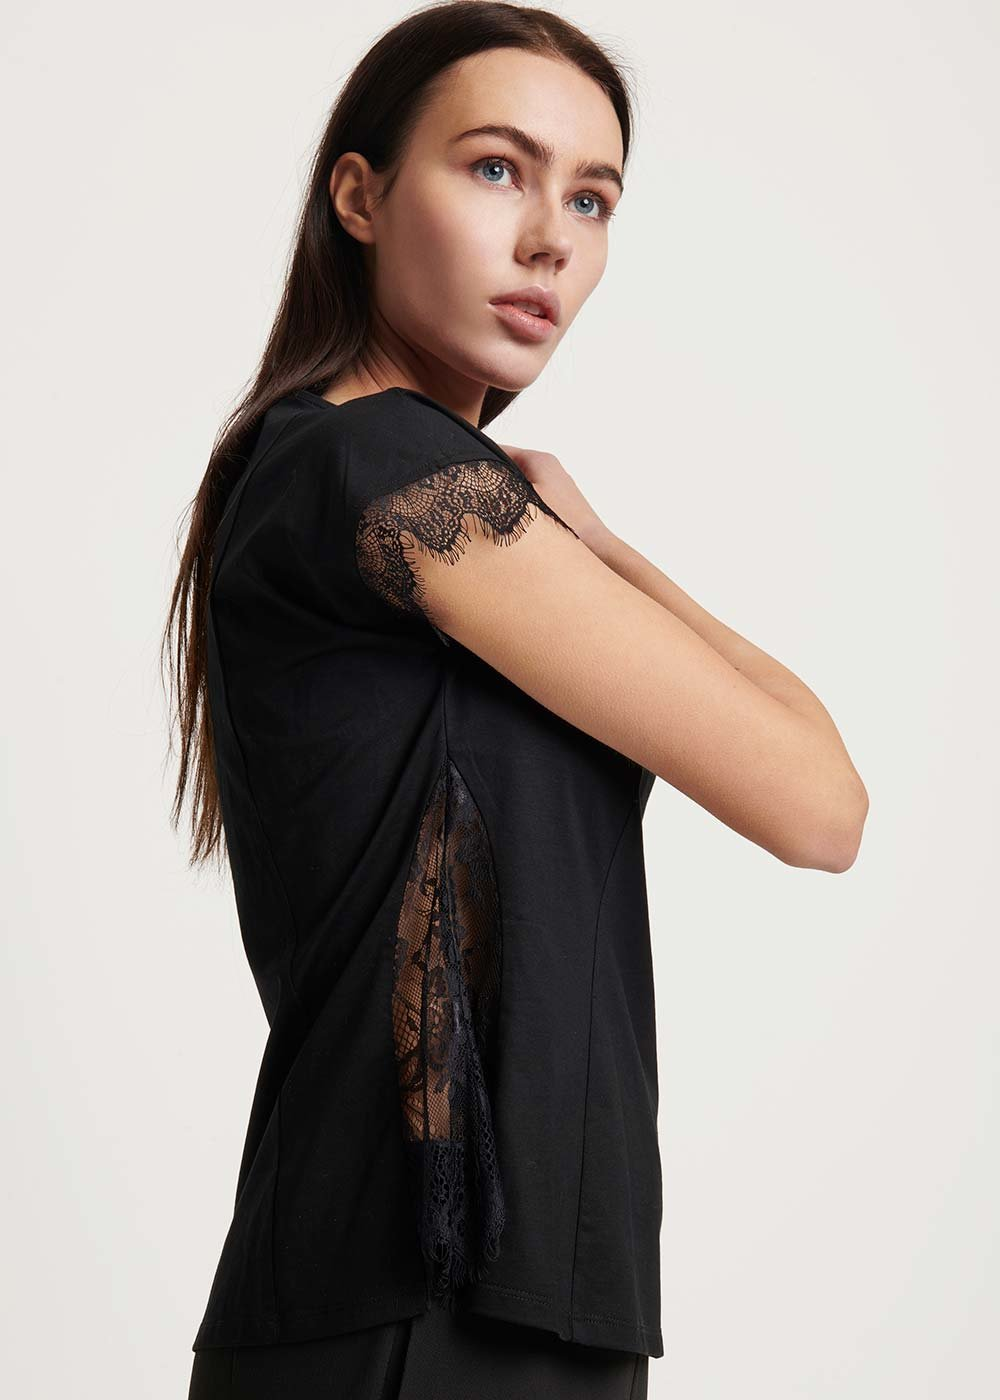 Sharyl T-shirt with lace detail - Black - Woman